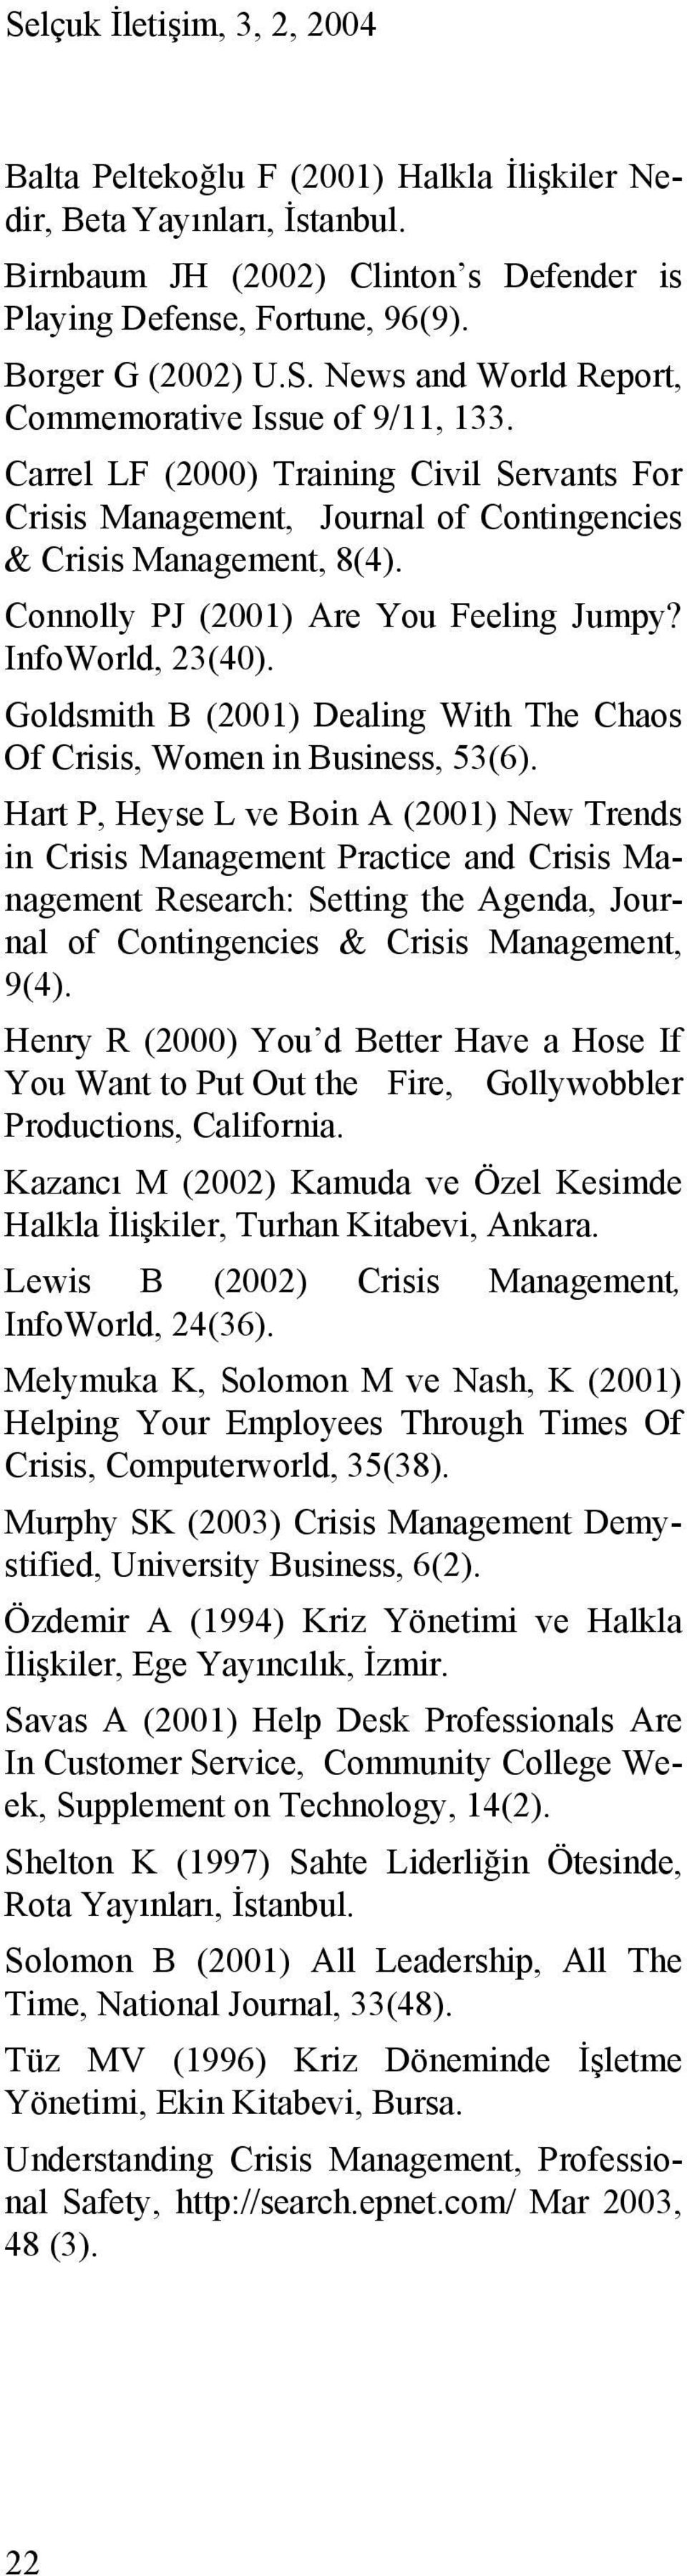 Goldsmith B (2001) Dealing With The Chaos Of Crisis, Women in Business, 53(6).